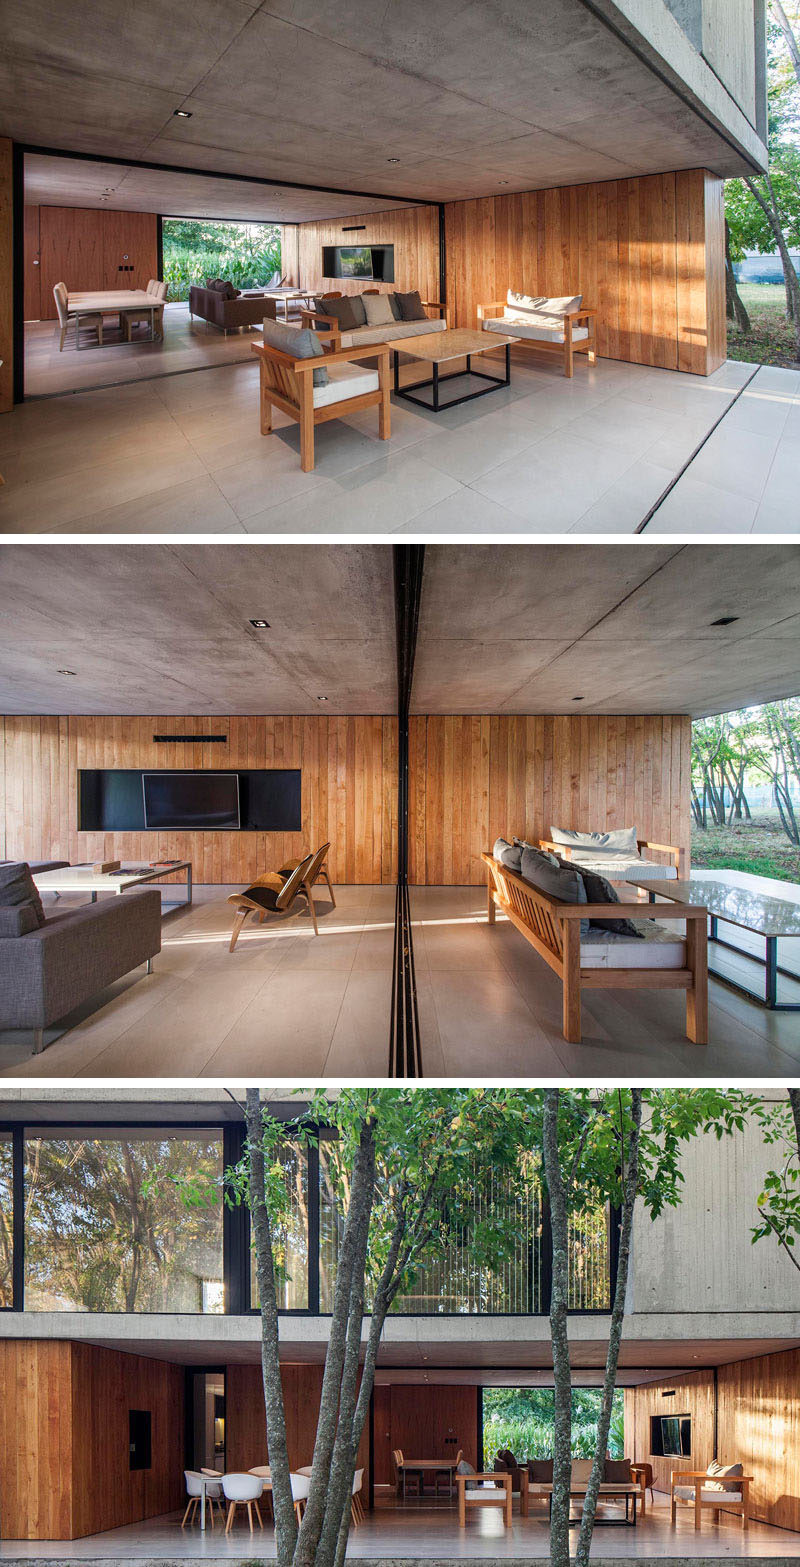 The interior concrete ceiling and wood wall of this modern house, extends to provide shade and protection for the outdoor living room and alfresco dining area. #Architecture #InteriorDesign #WoodWall #ModernHouse